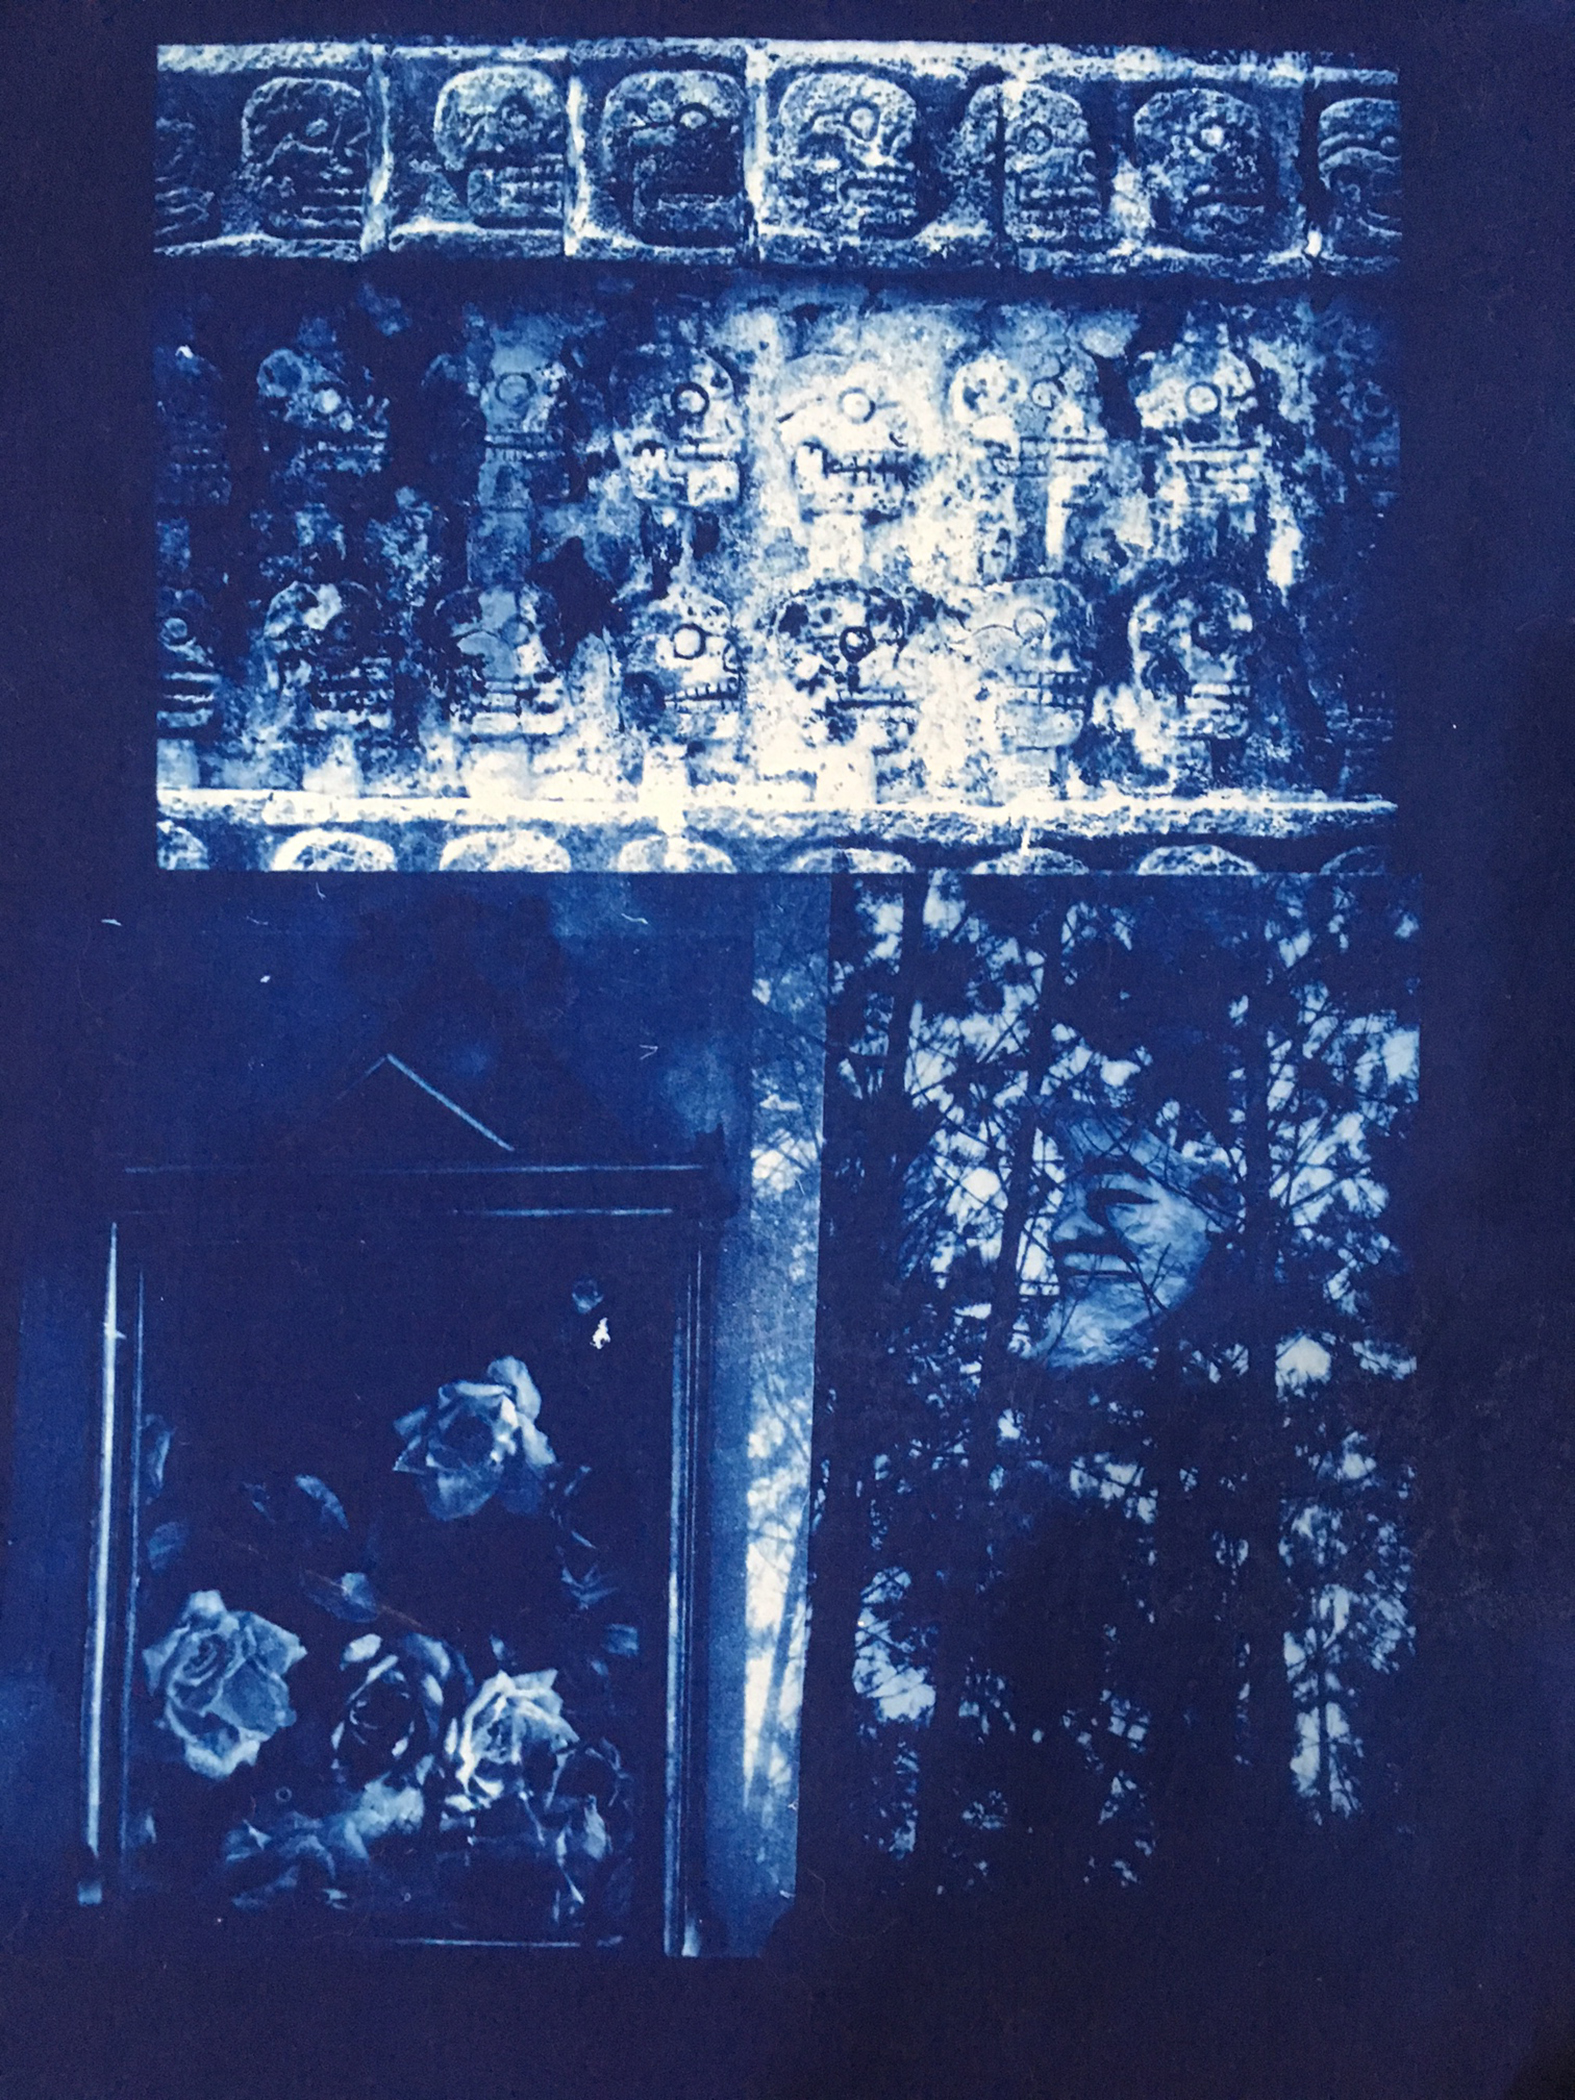 4wVermontAndMaine.cyanotype on cloth.